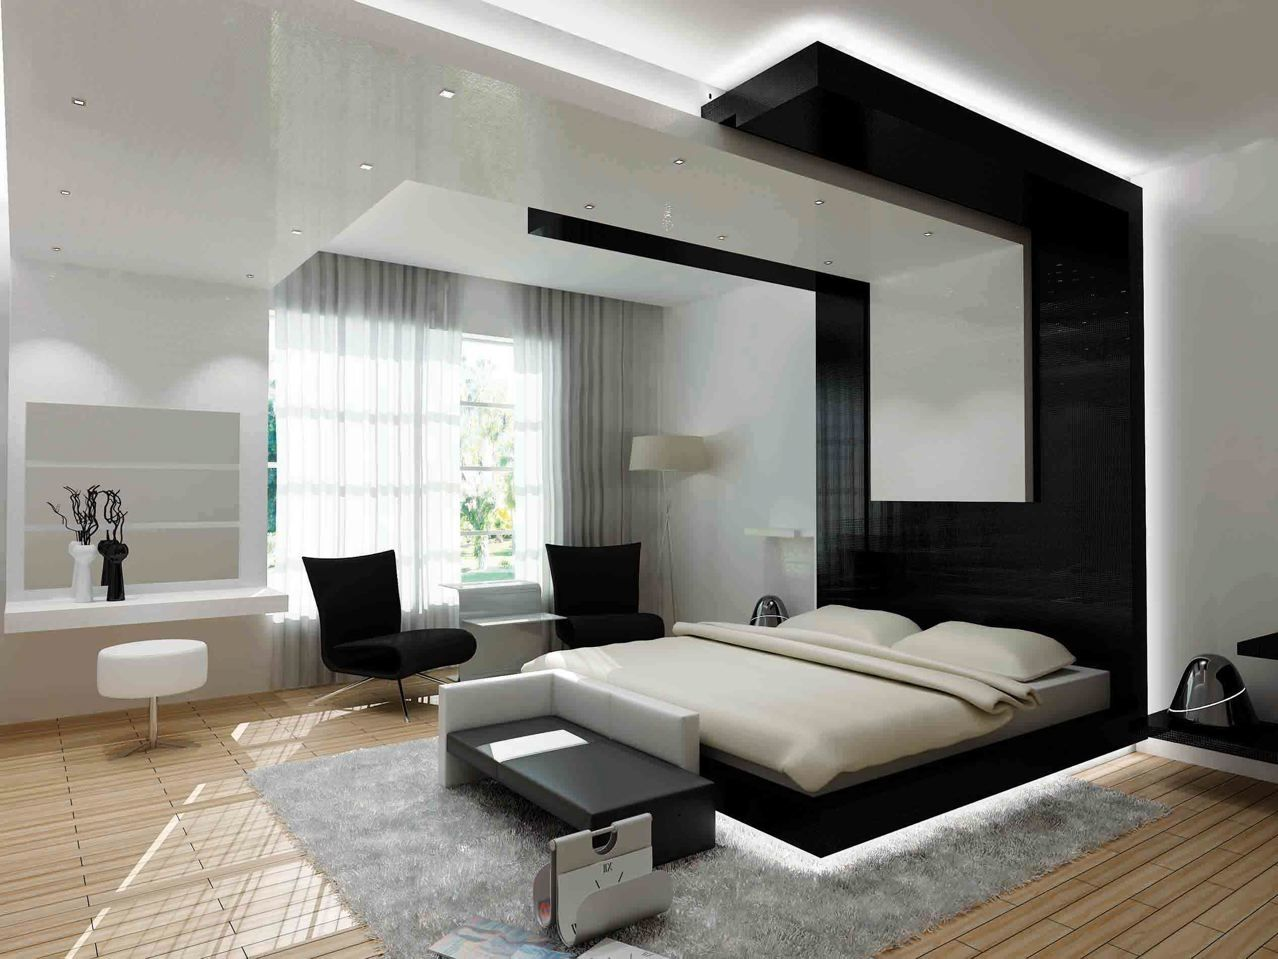 New Interior Design Of Bedroom Alluring Bedroom Decor Design What's New  Upholstered Headboard Ideas Design Inspiration